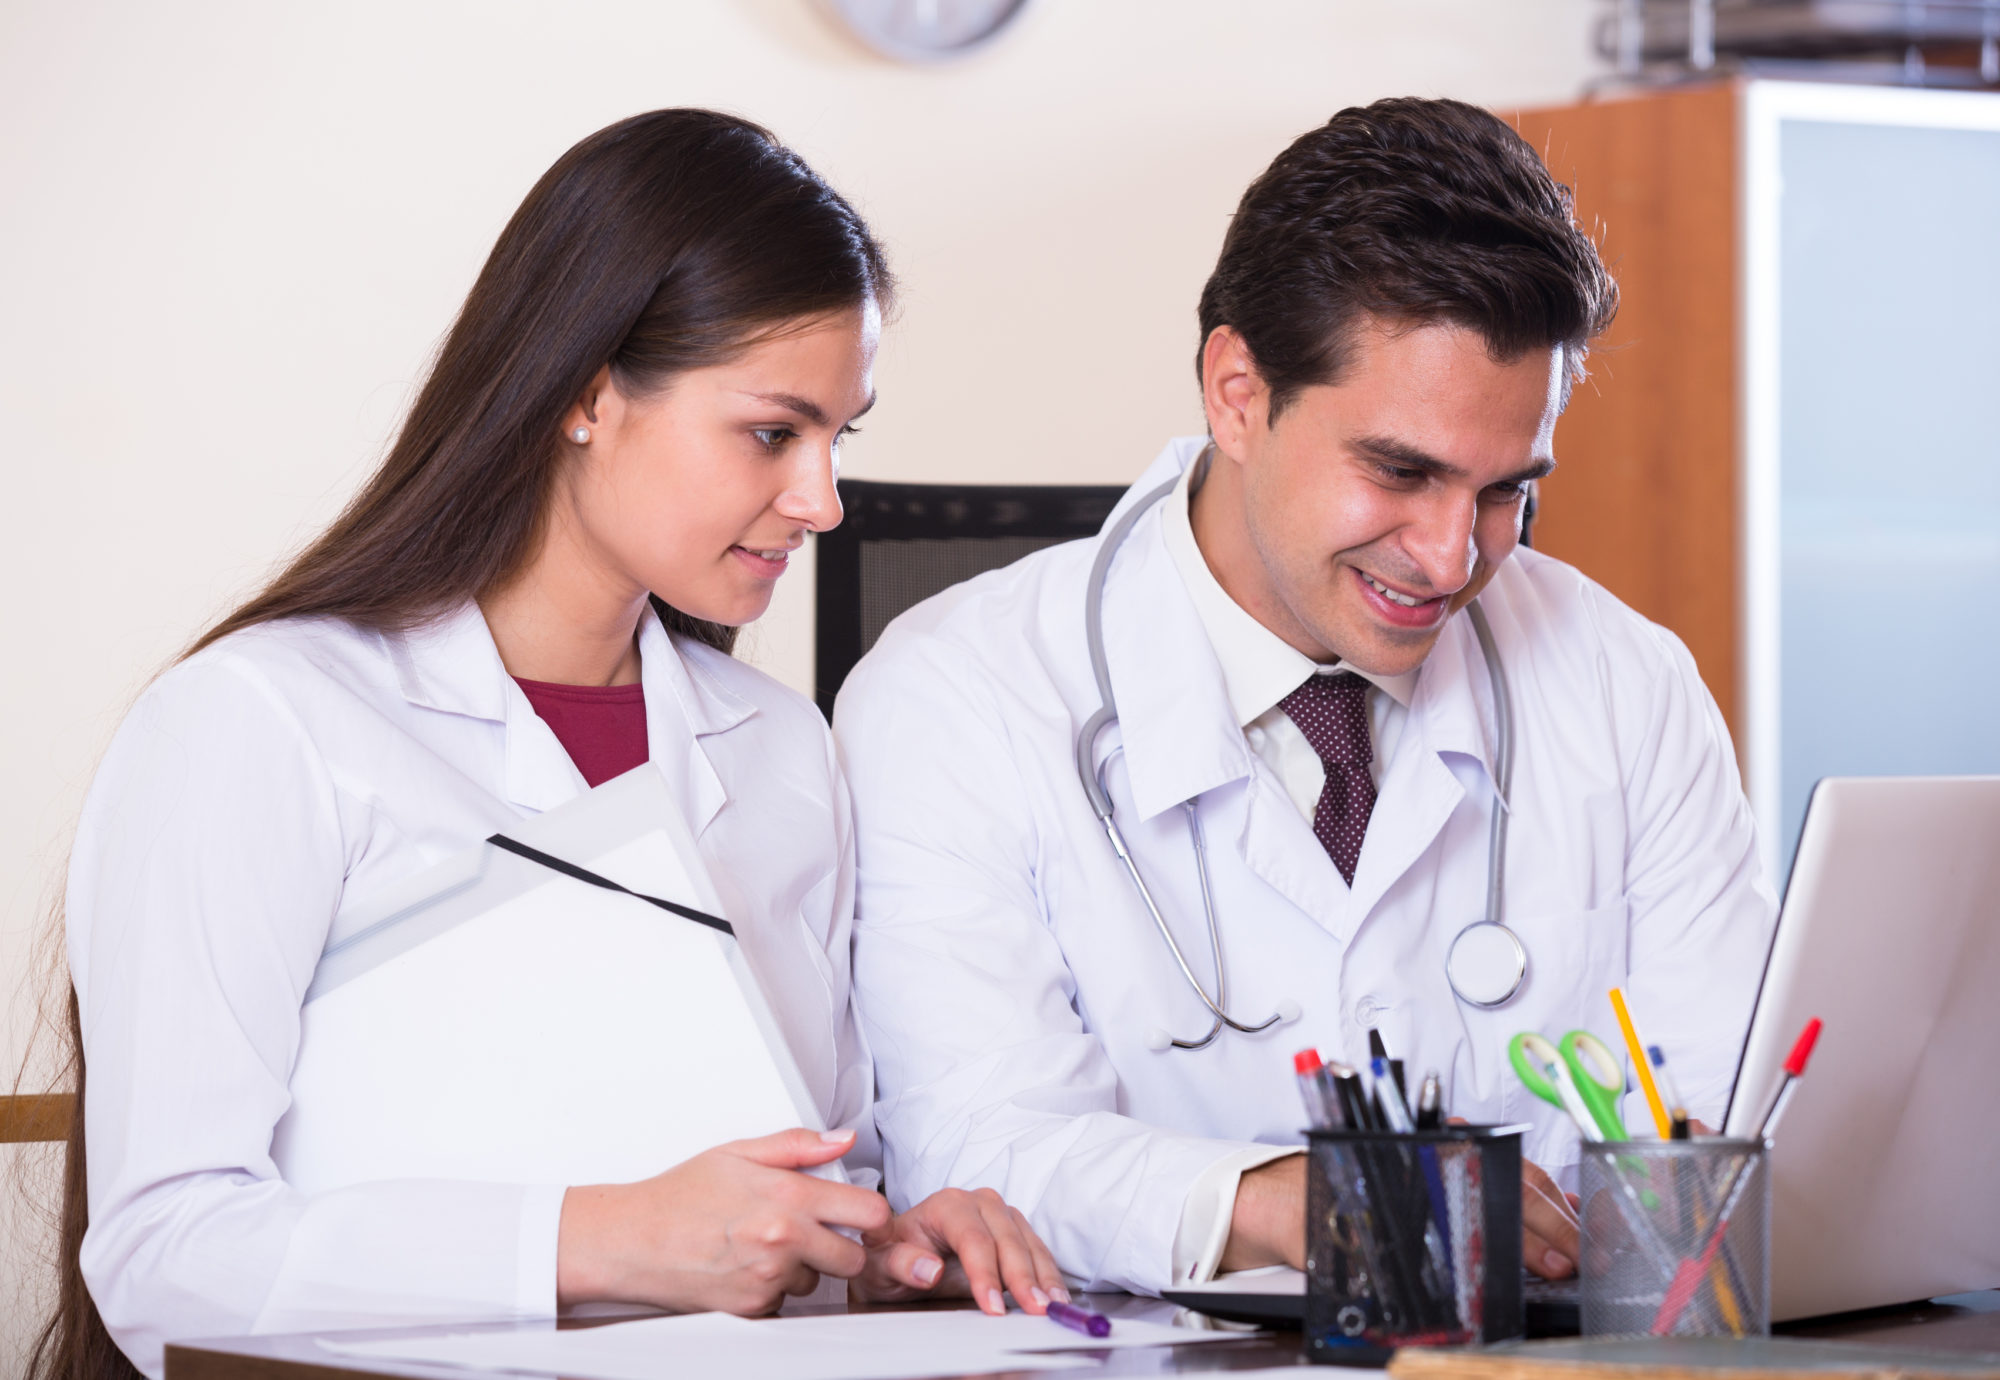 How Tutoring Can Help You ACE Your USMLE Exams